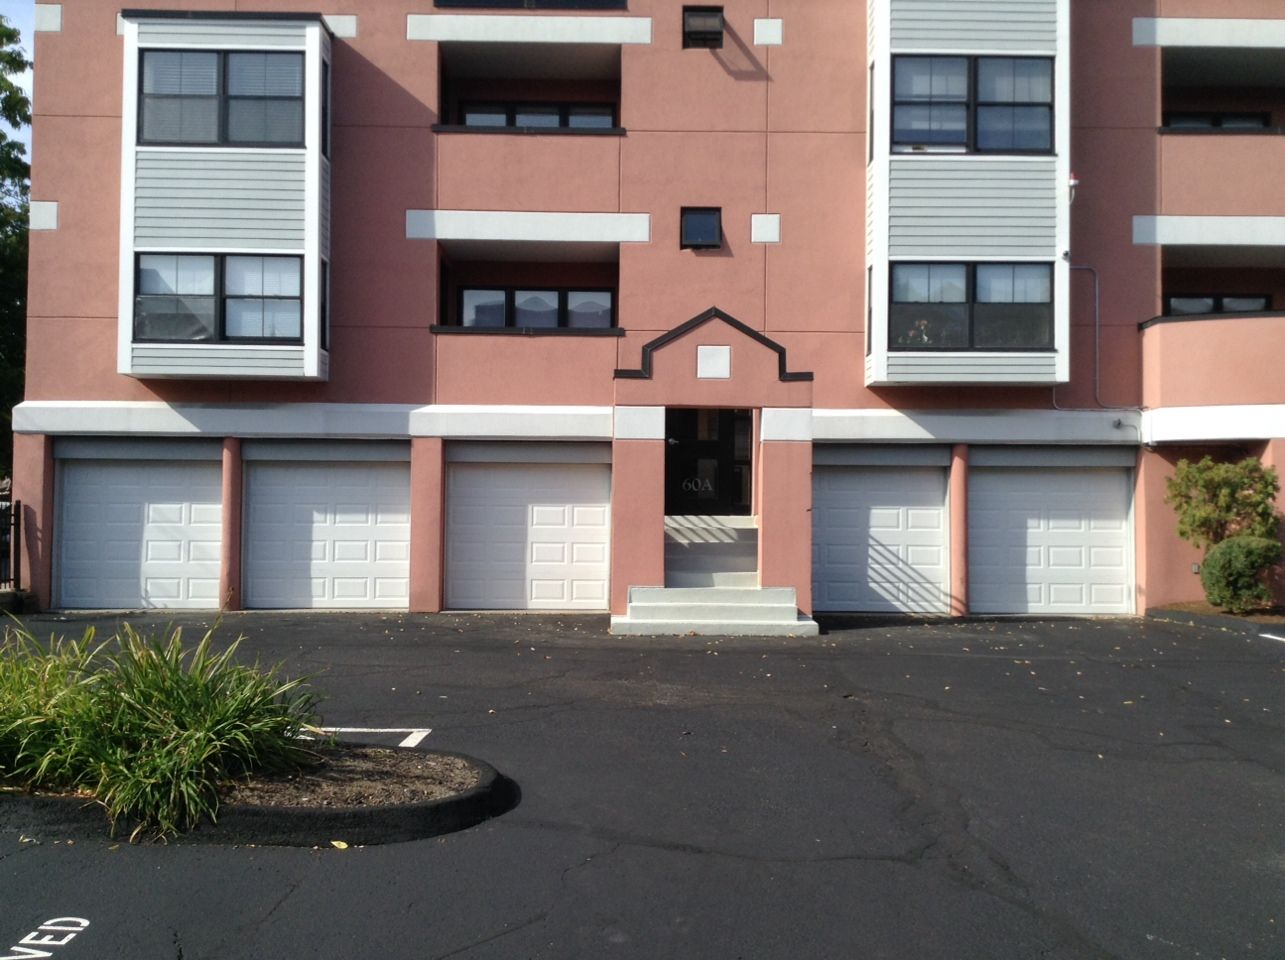 New Condo Complex Garage Doors In Dorchester Ma Boston Area